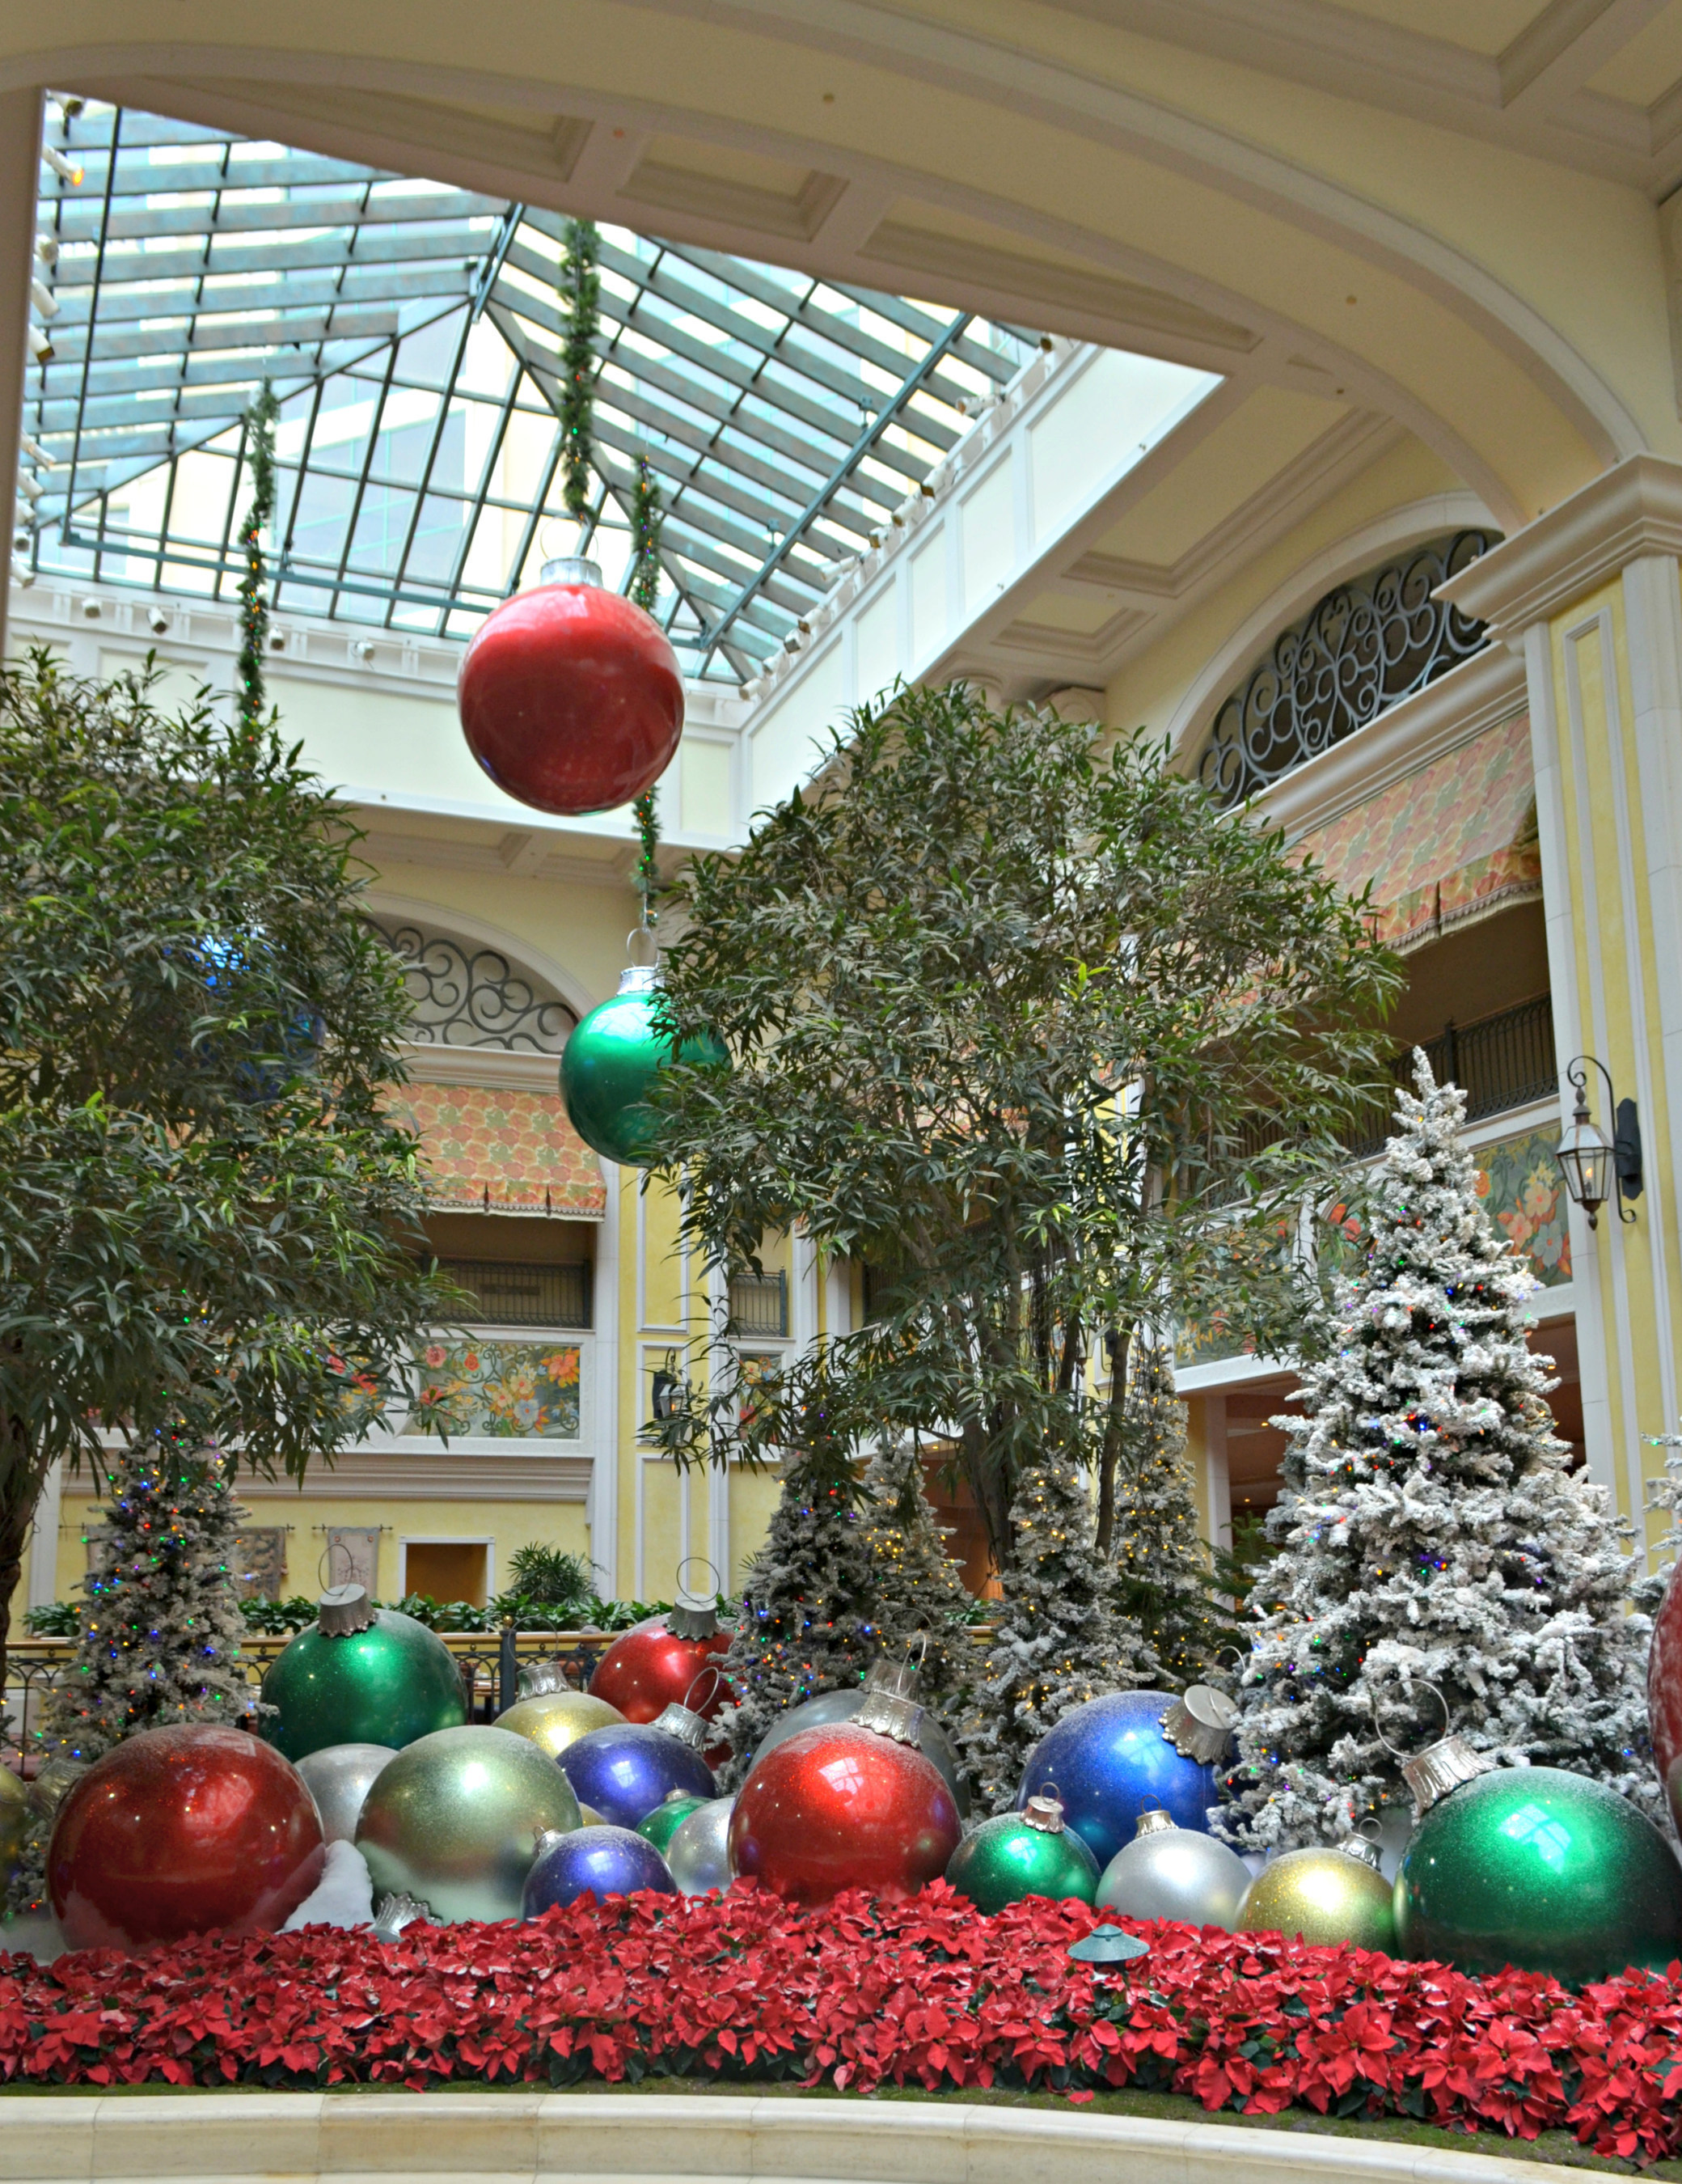 Beau Rivage Resort & Casino celebrates the season with dazzling displays, dining specials and a spectacular holiday show on ice.